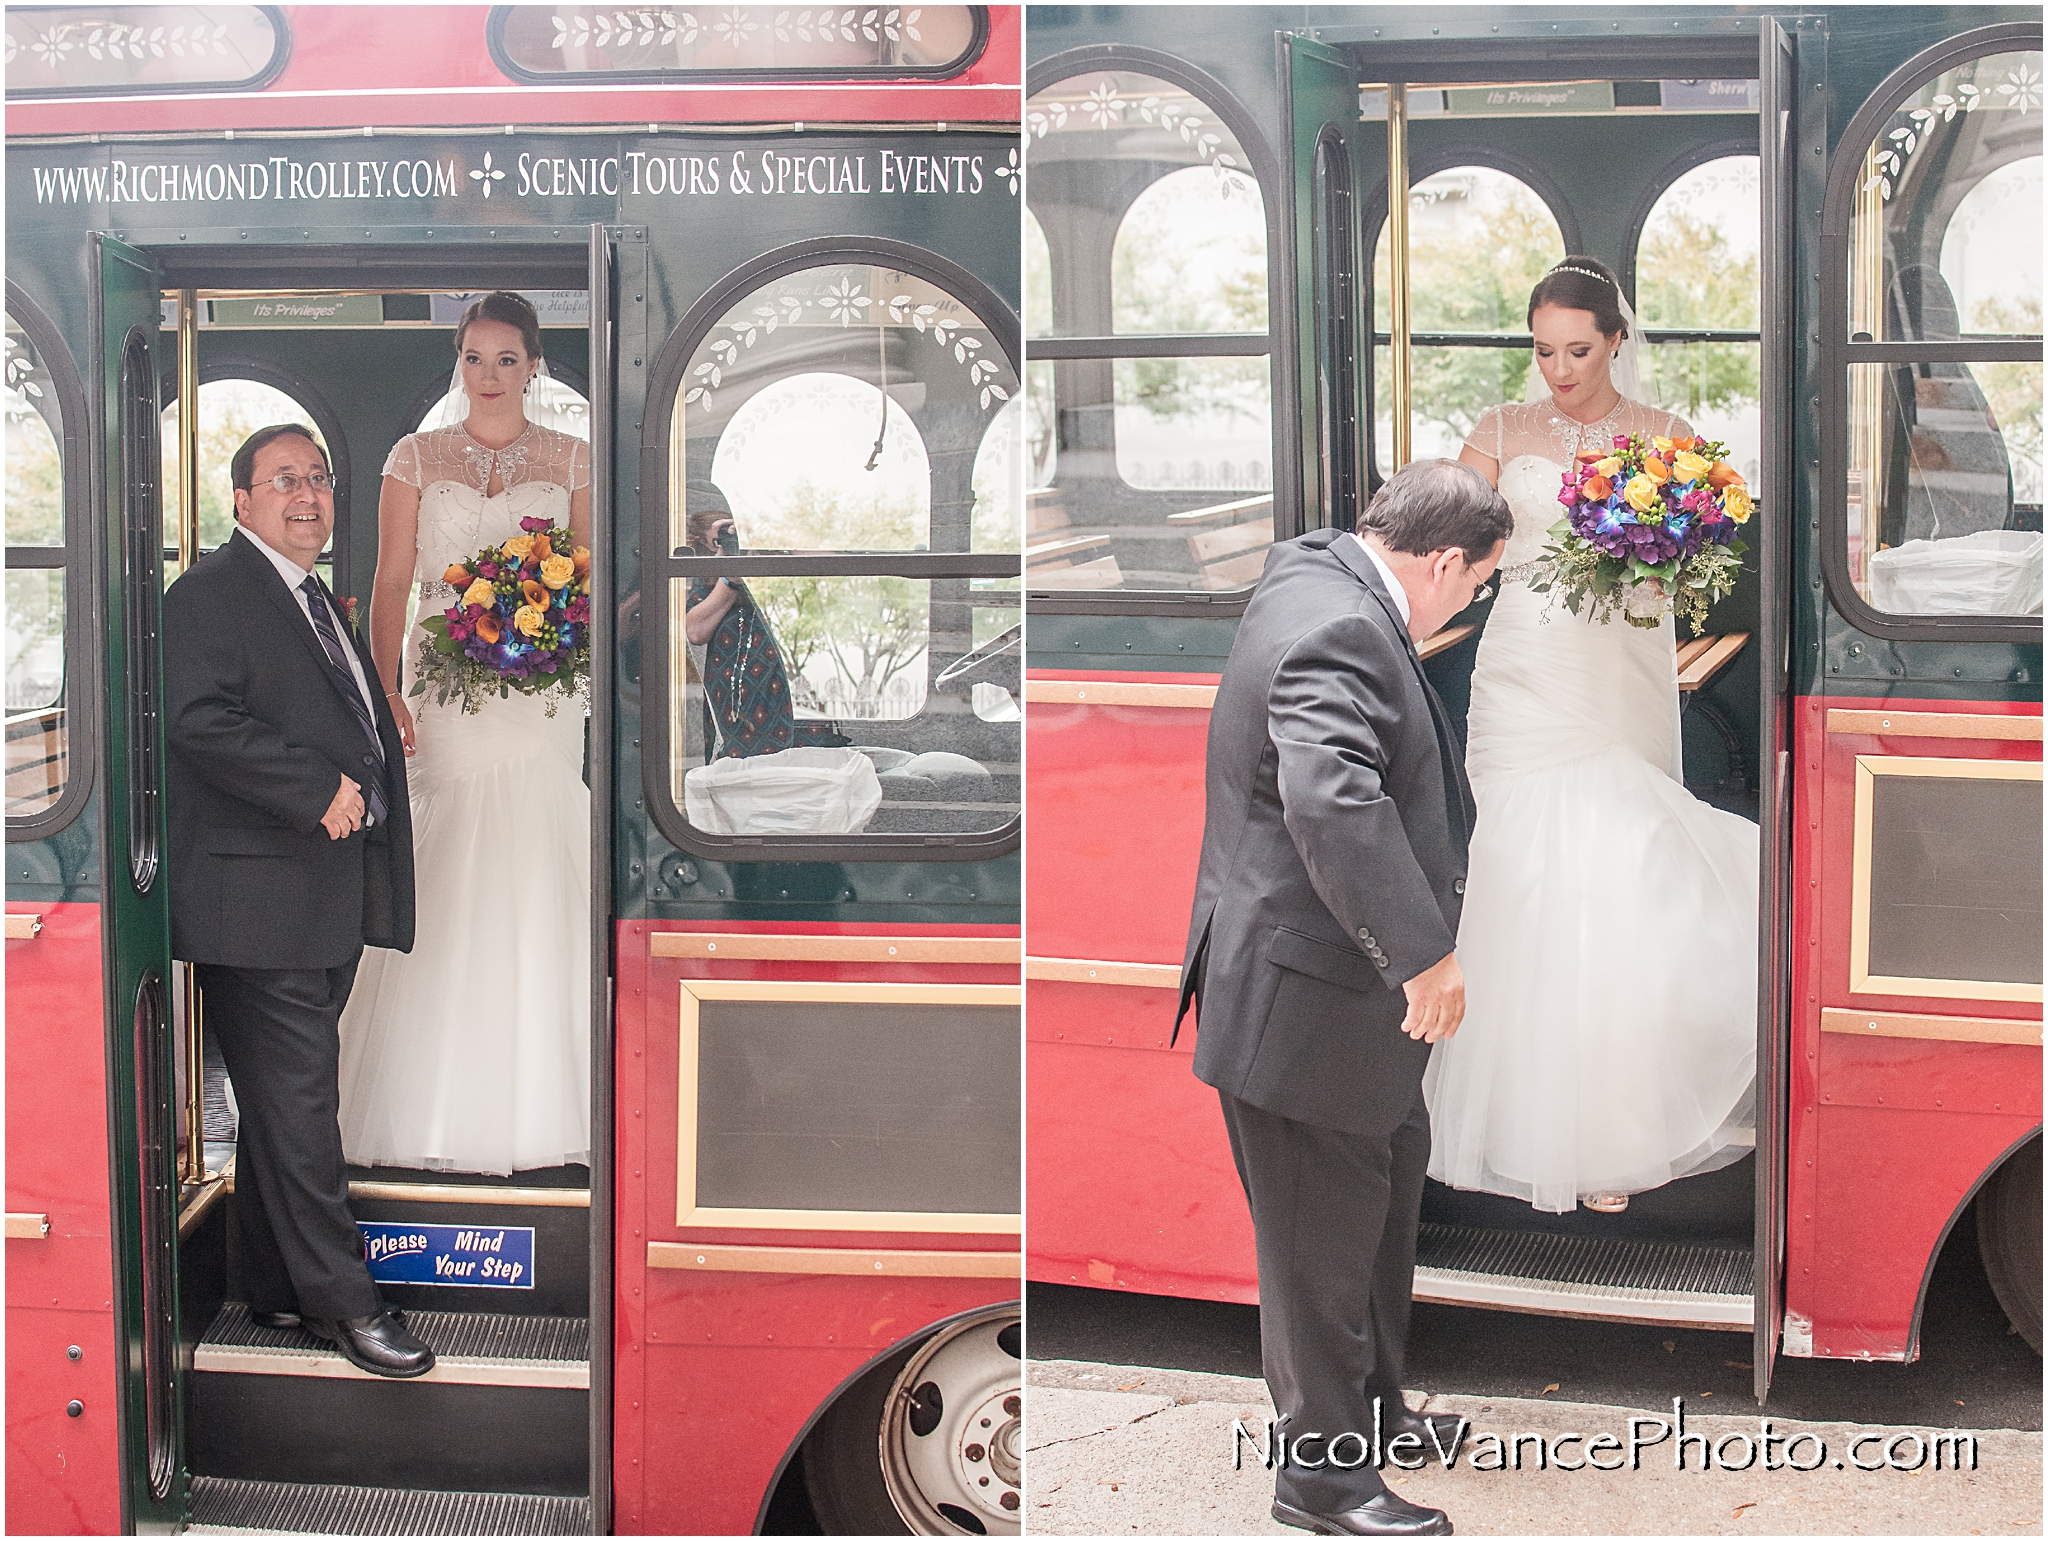 The bride exits the trolley at St Peter's Catholic Church.